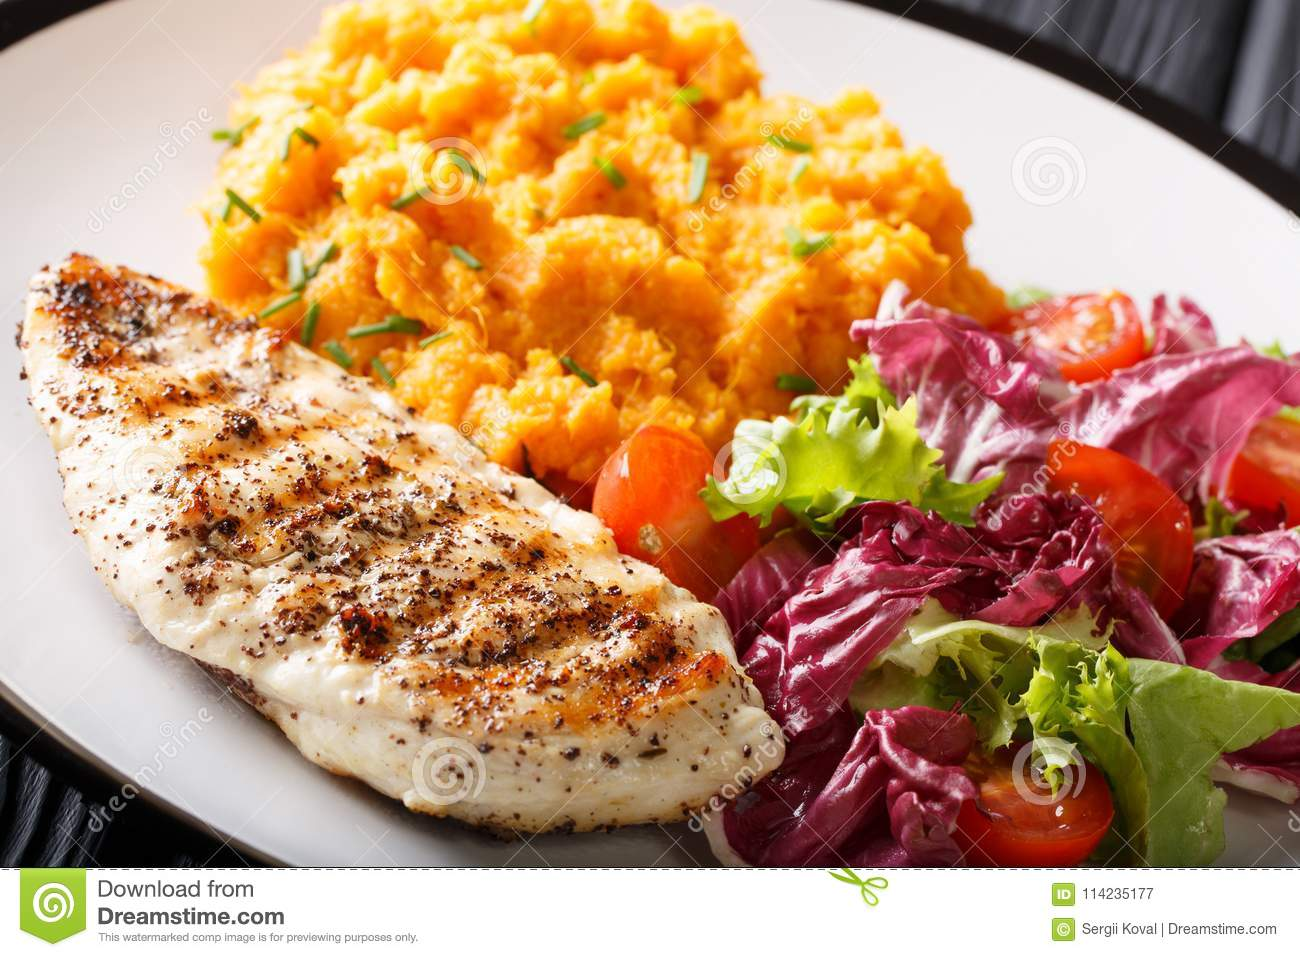 Grilled Chicken Fillet With Mashed Sweet Potatoes And Fresh Lettuce Close Up Horizontal Stock Image Image Of Horizontal Food 114235177